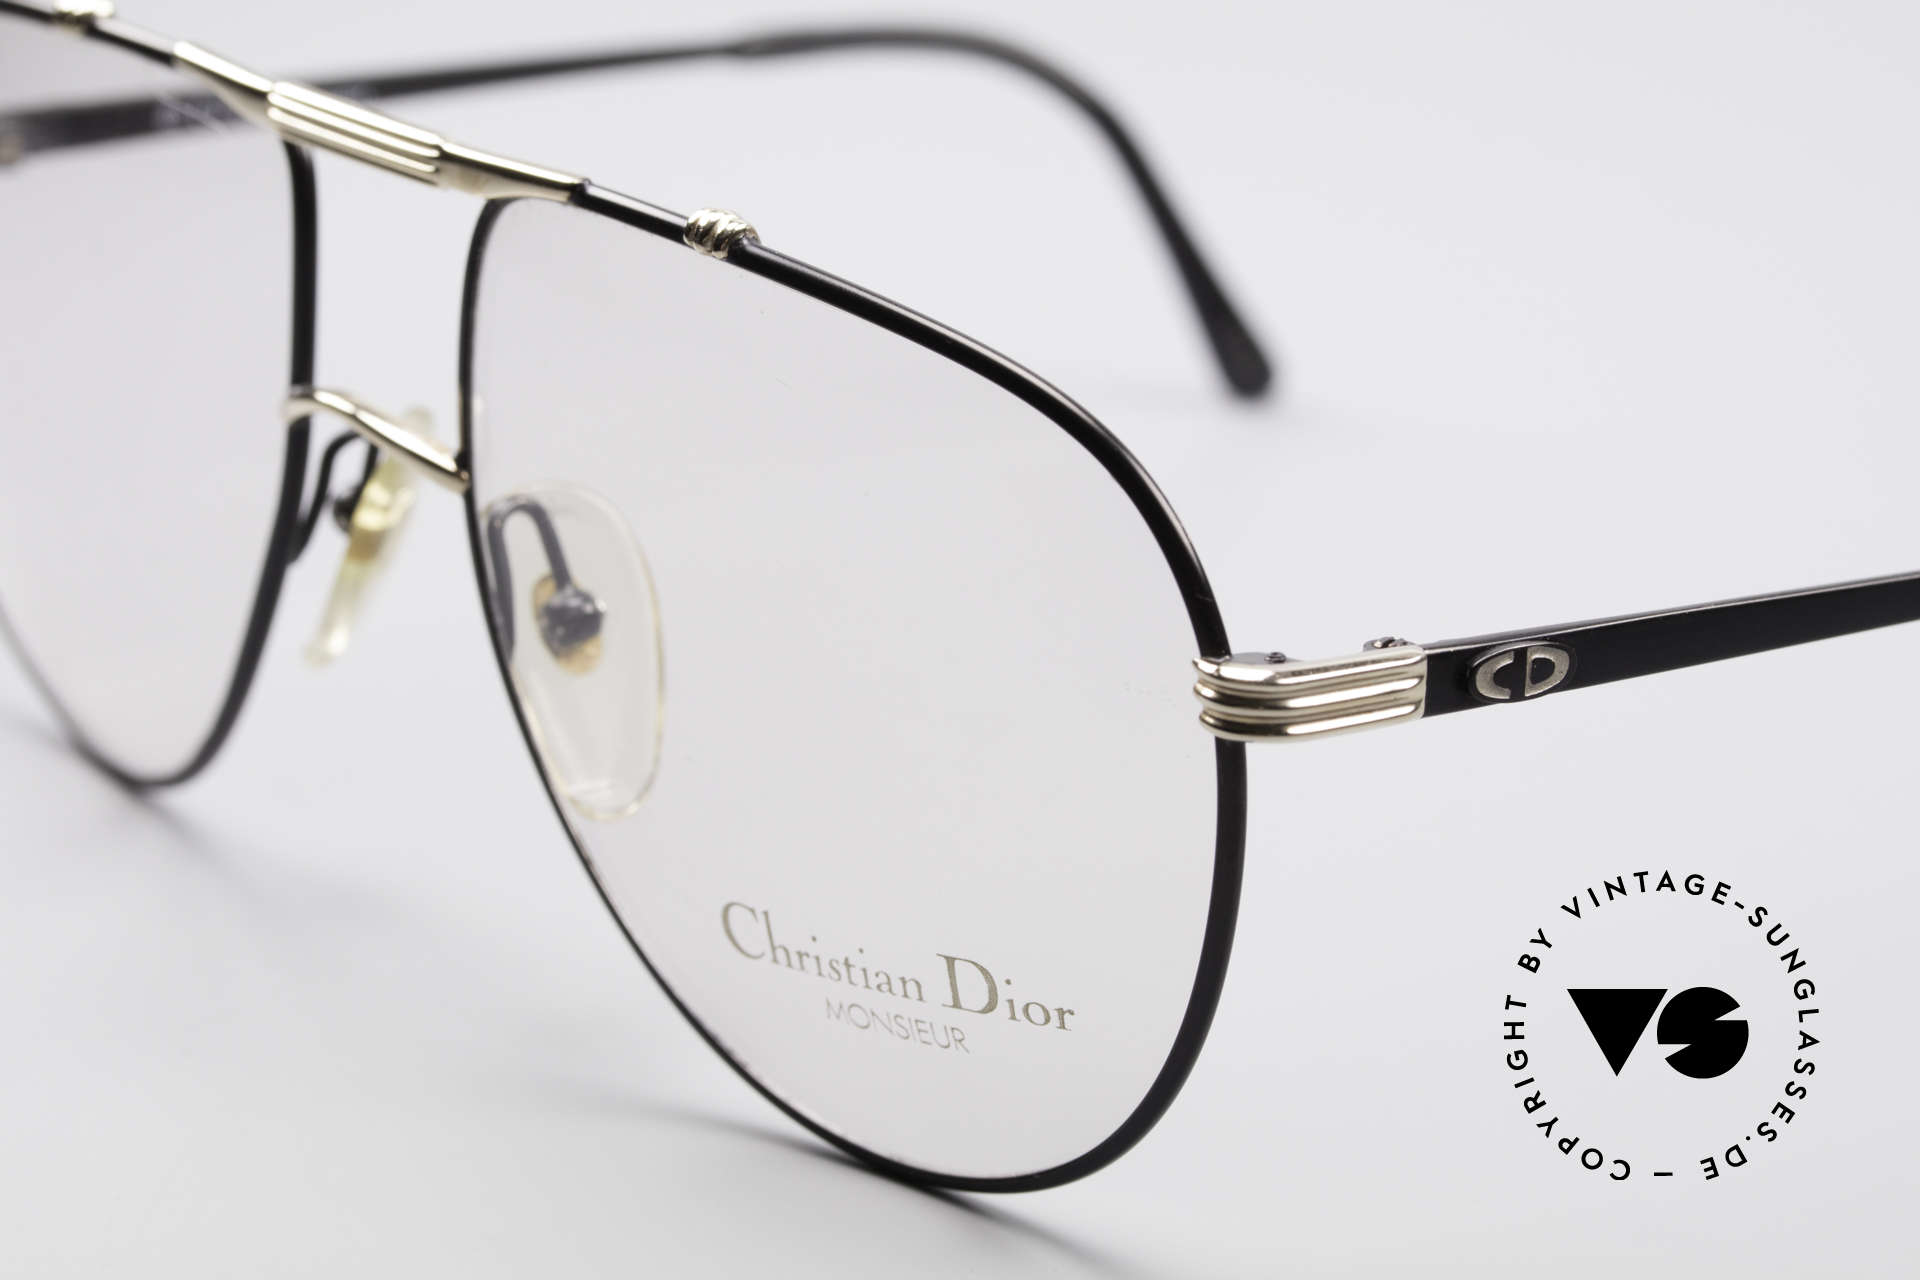 Christian Dior 2248 L 80's Dior Monsieur Frame, new old stock (like all our rare vintage C. Dior eyewear), Made for Men